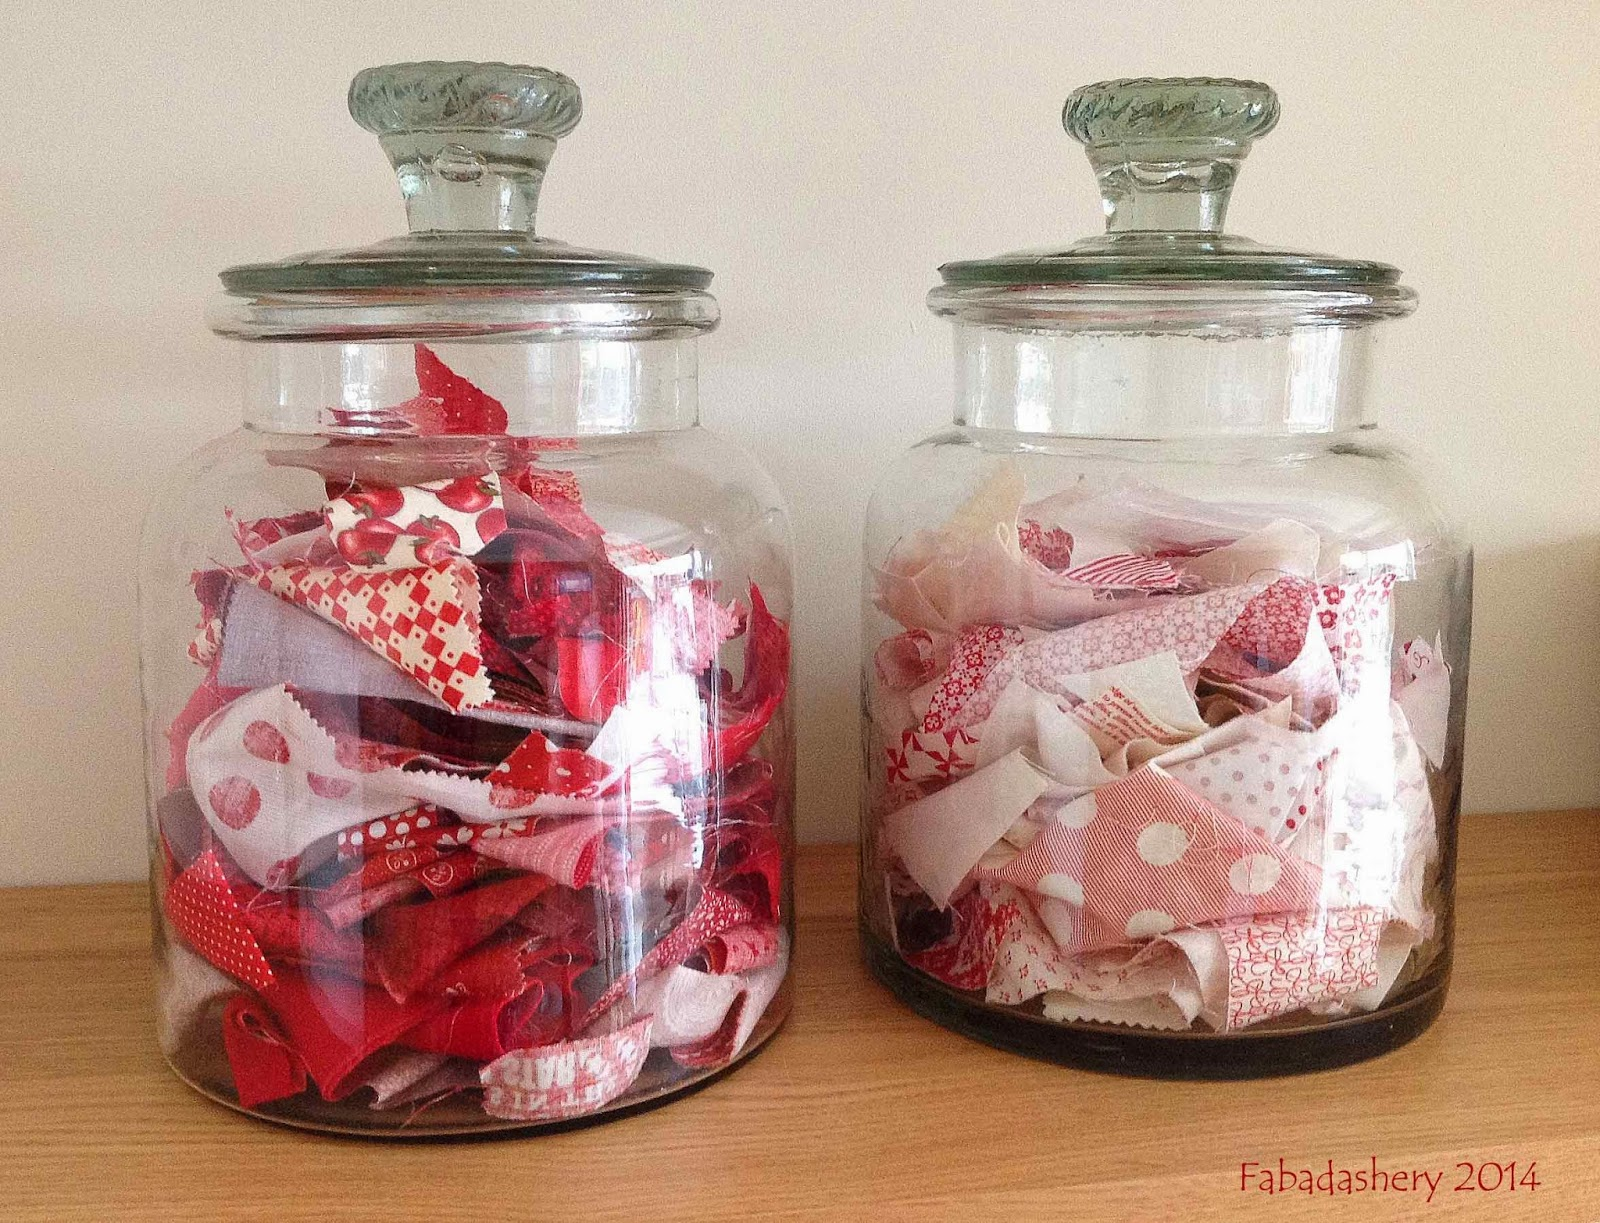 Giant sweet jars filled with fabric scraps